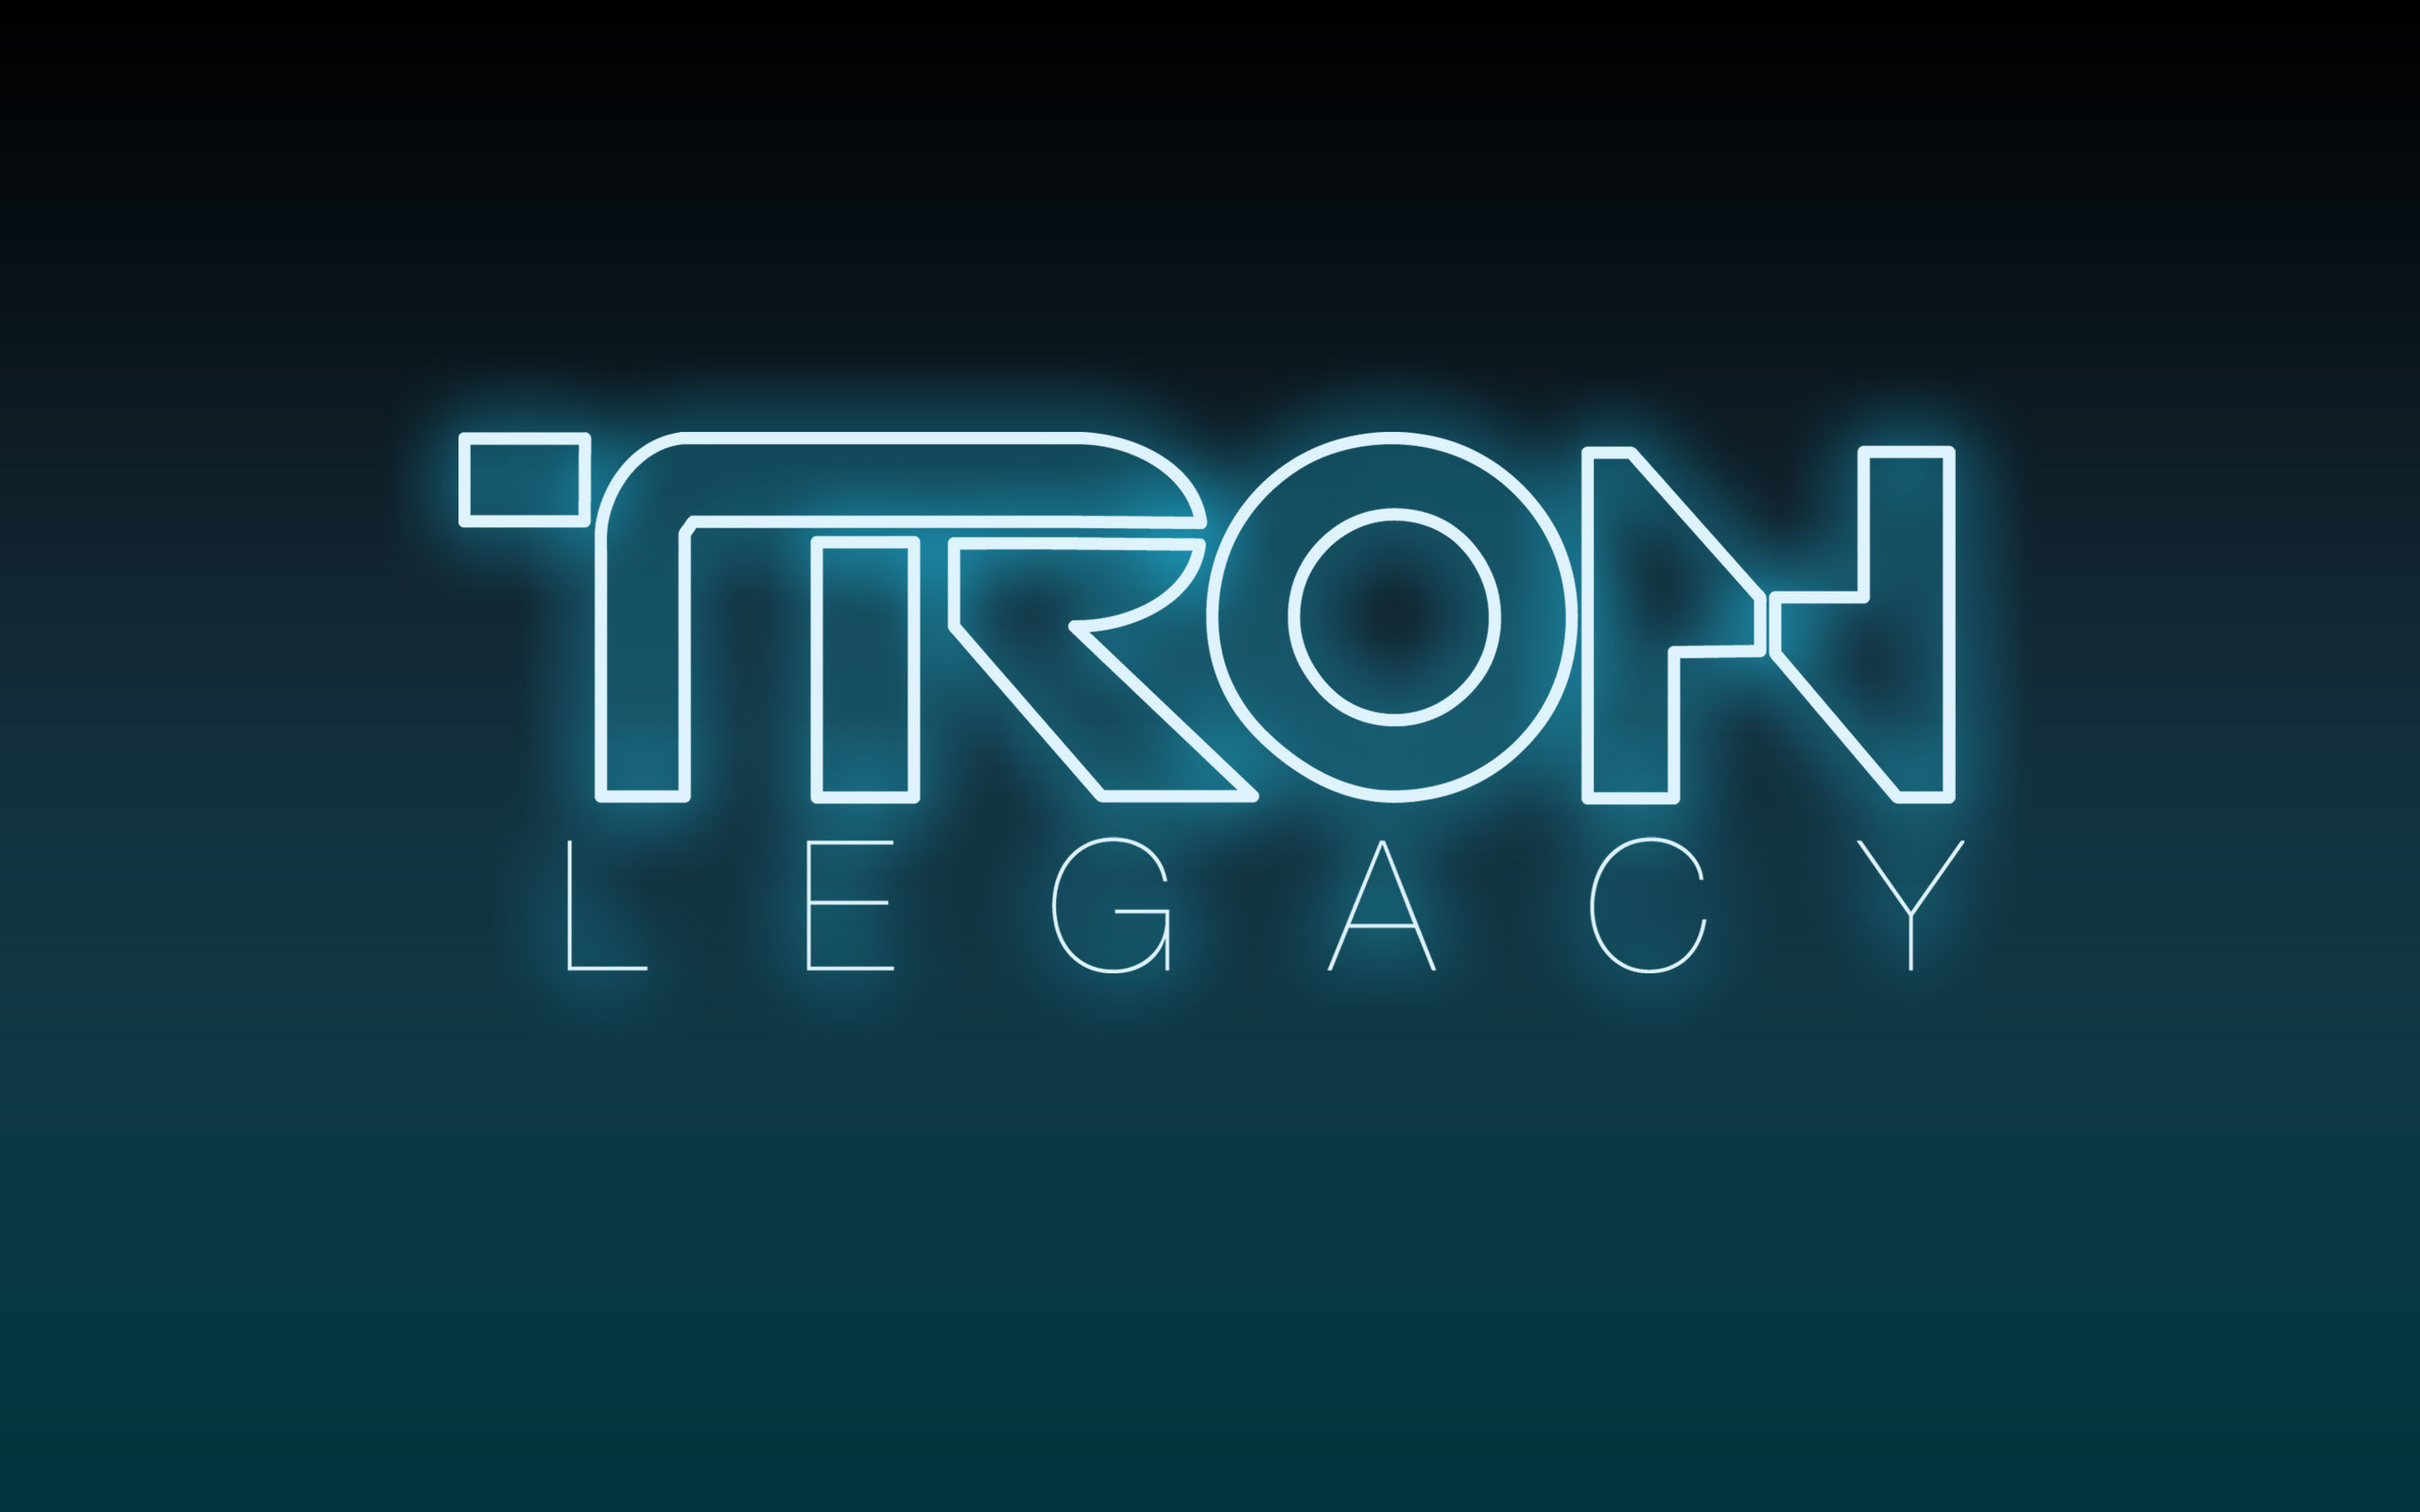 2560x1600 Disney's Tron: Legacy Movie Logo wallpaper - Click picture for high  resolution HD wallpaper